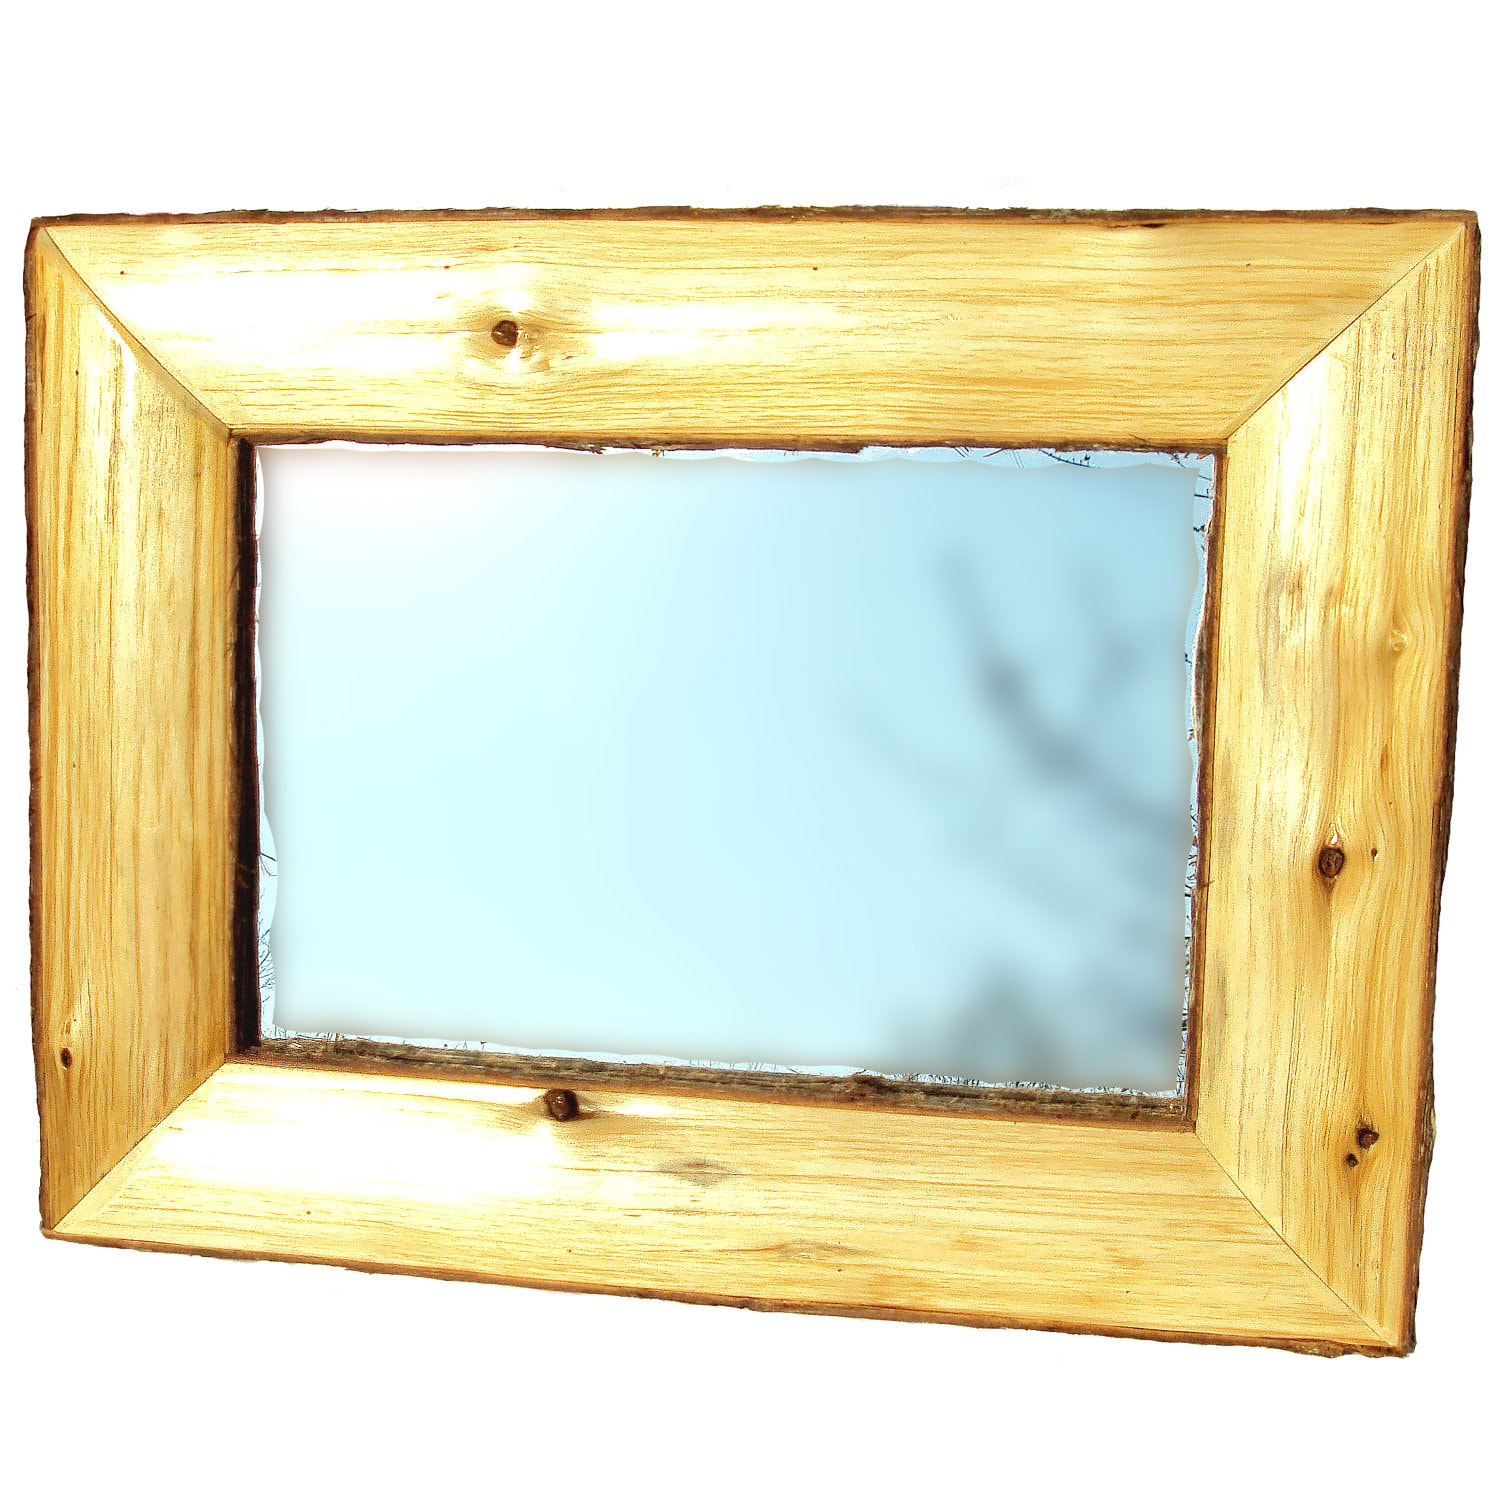 Half log framed mirror log mirror rustic framed mirror for Rustic mirror